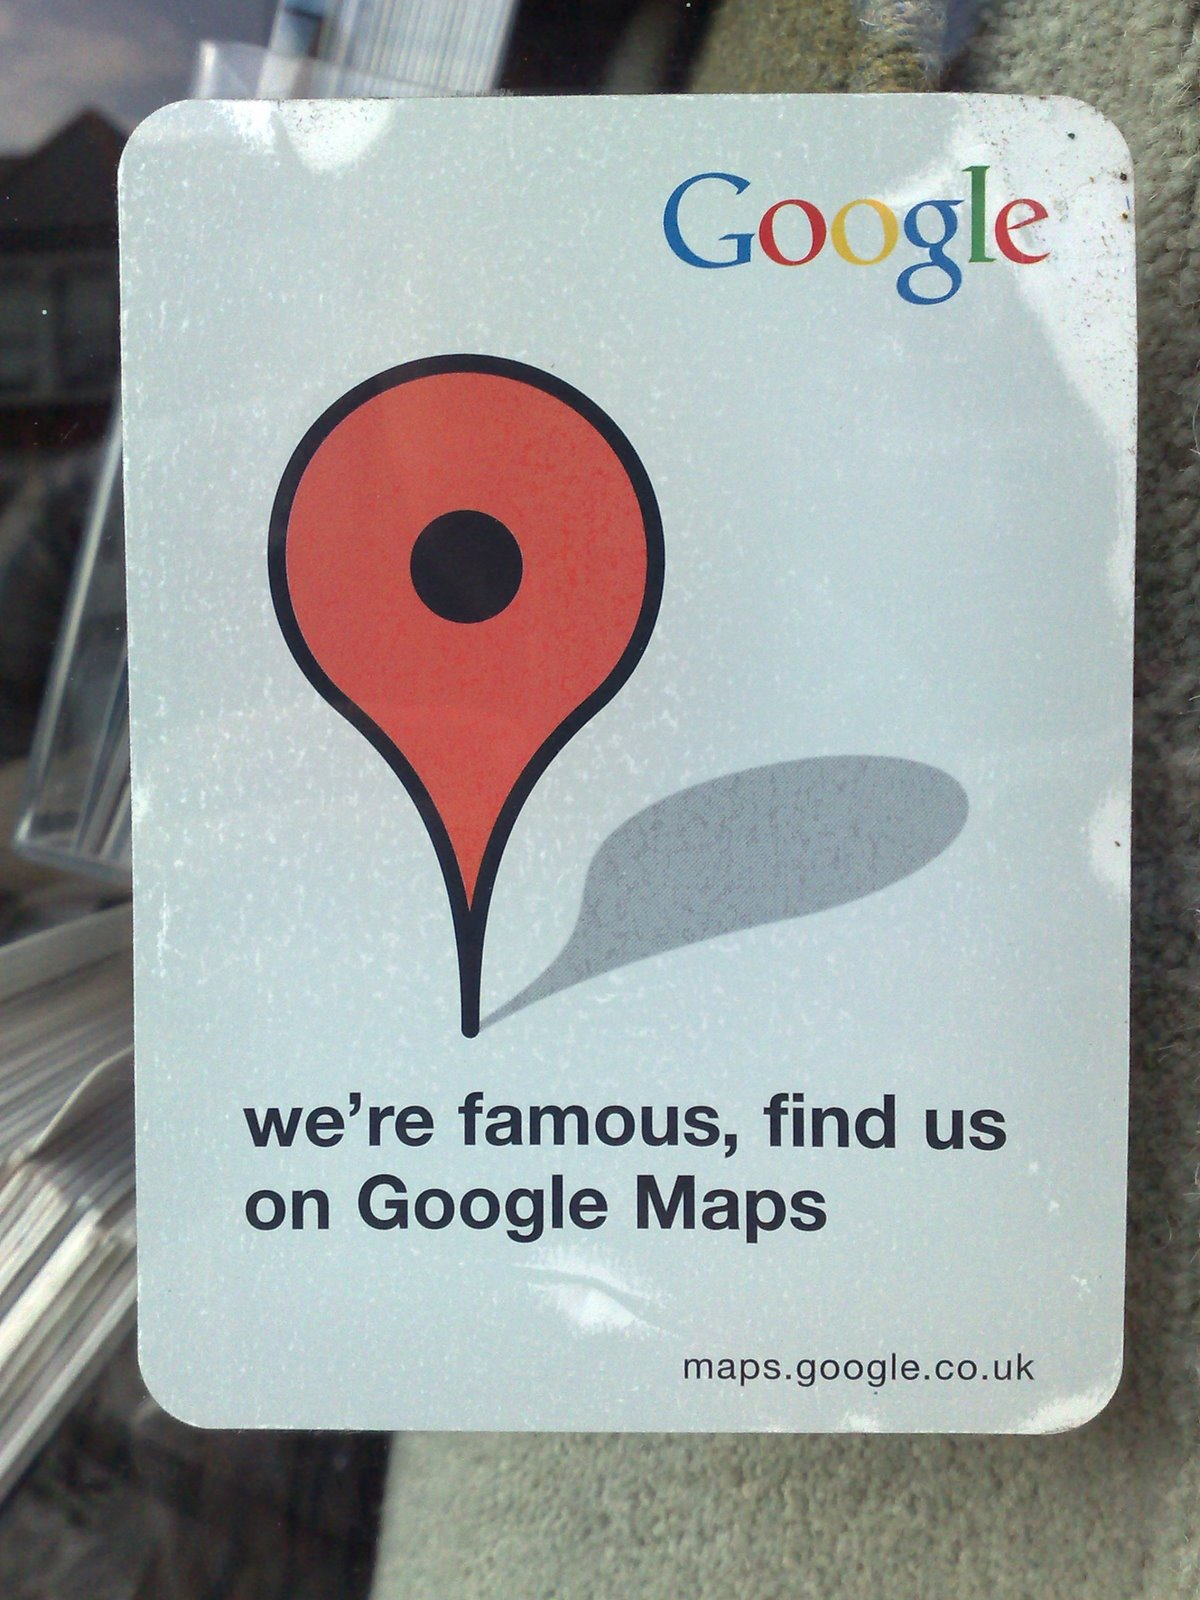 NBA Store And I Love Brands Using Their Window Displays To Promote - Find us on google maps stickers